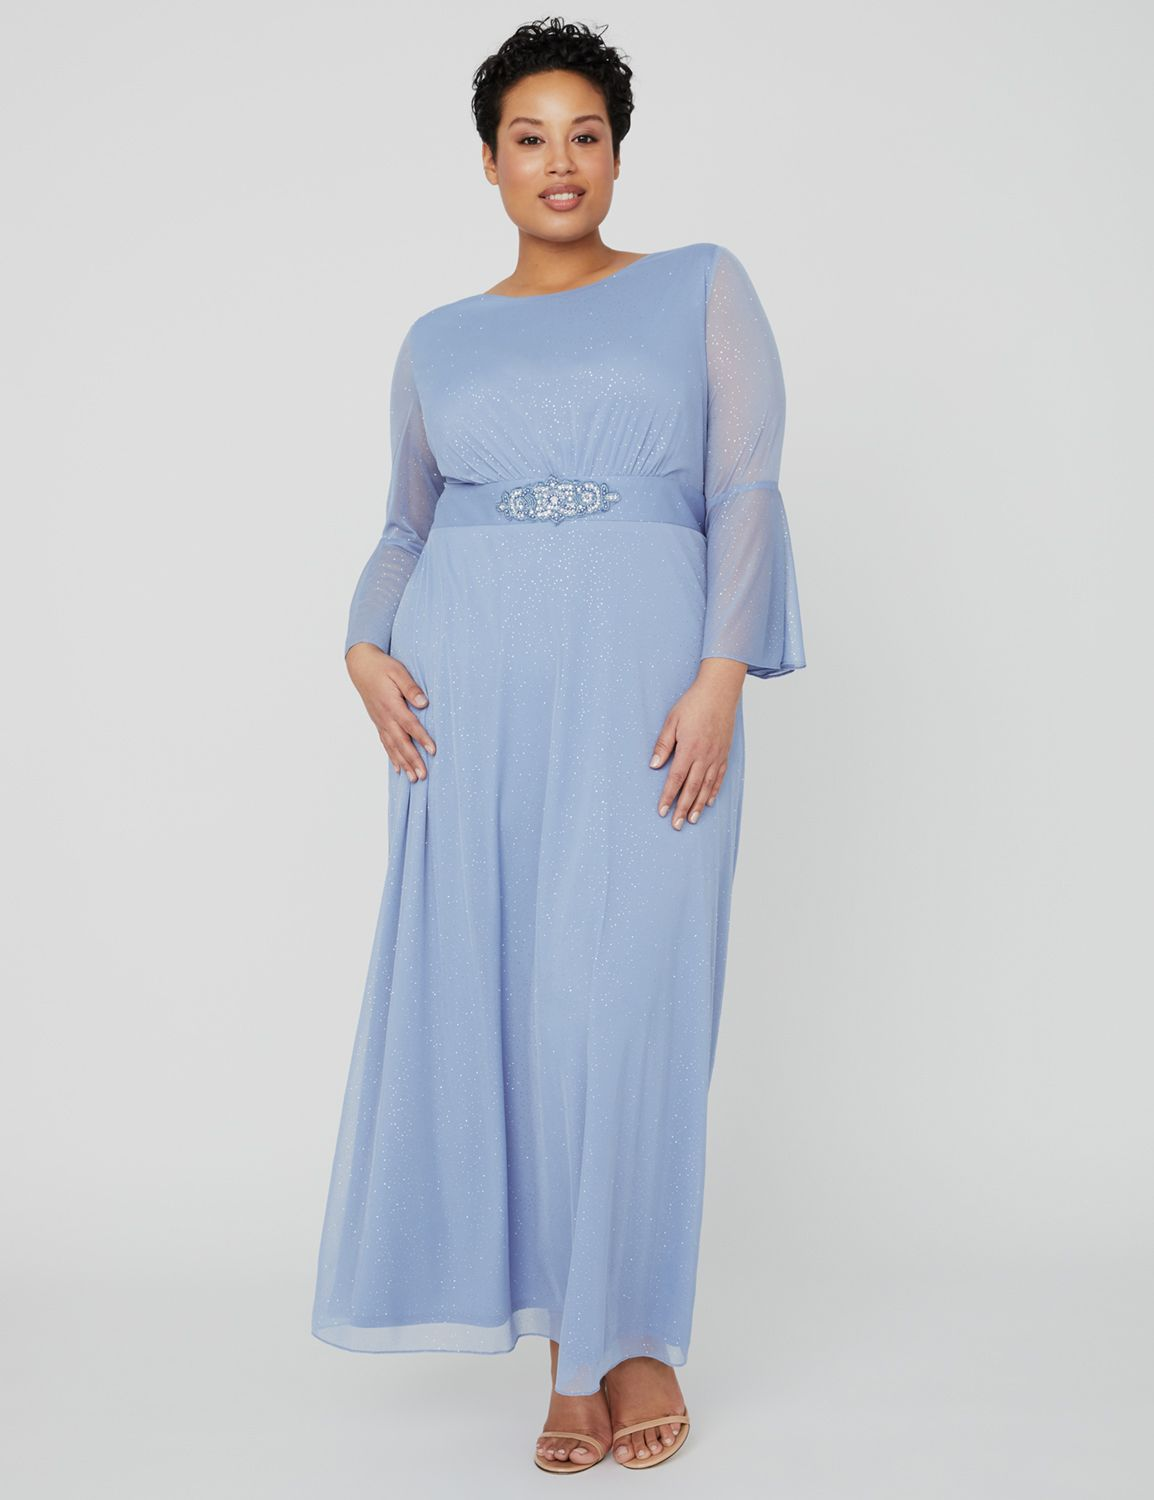 Twilight Sky Gown 1090991 Empire Waist Dress with Wai MP-300099836